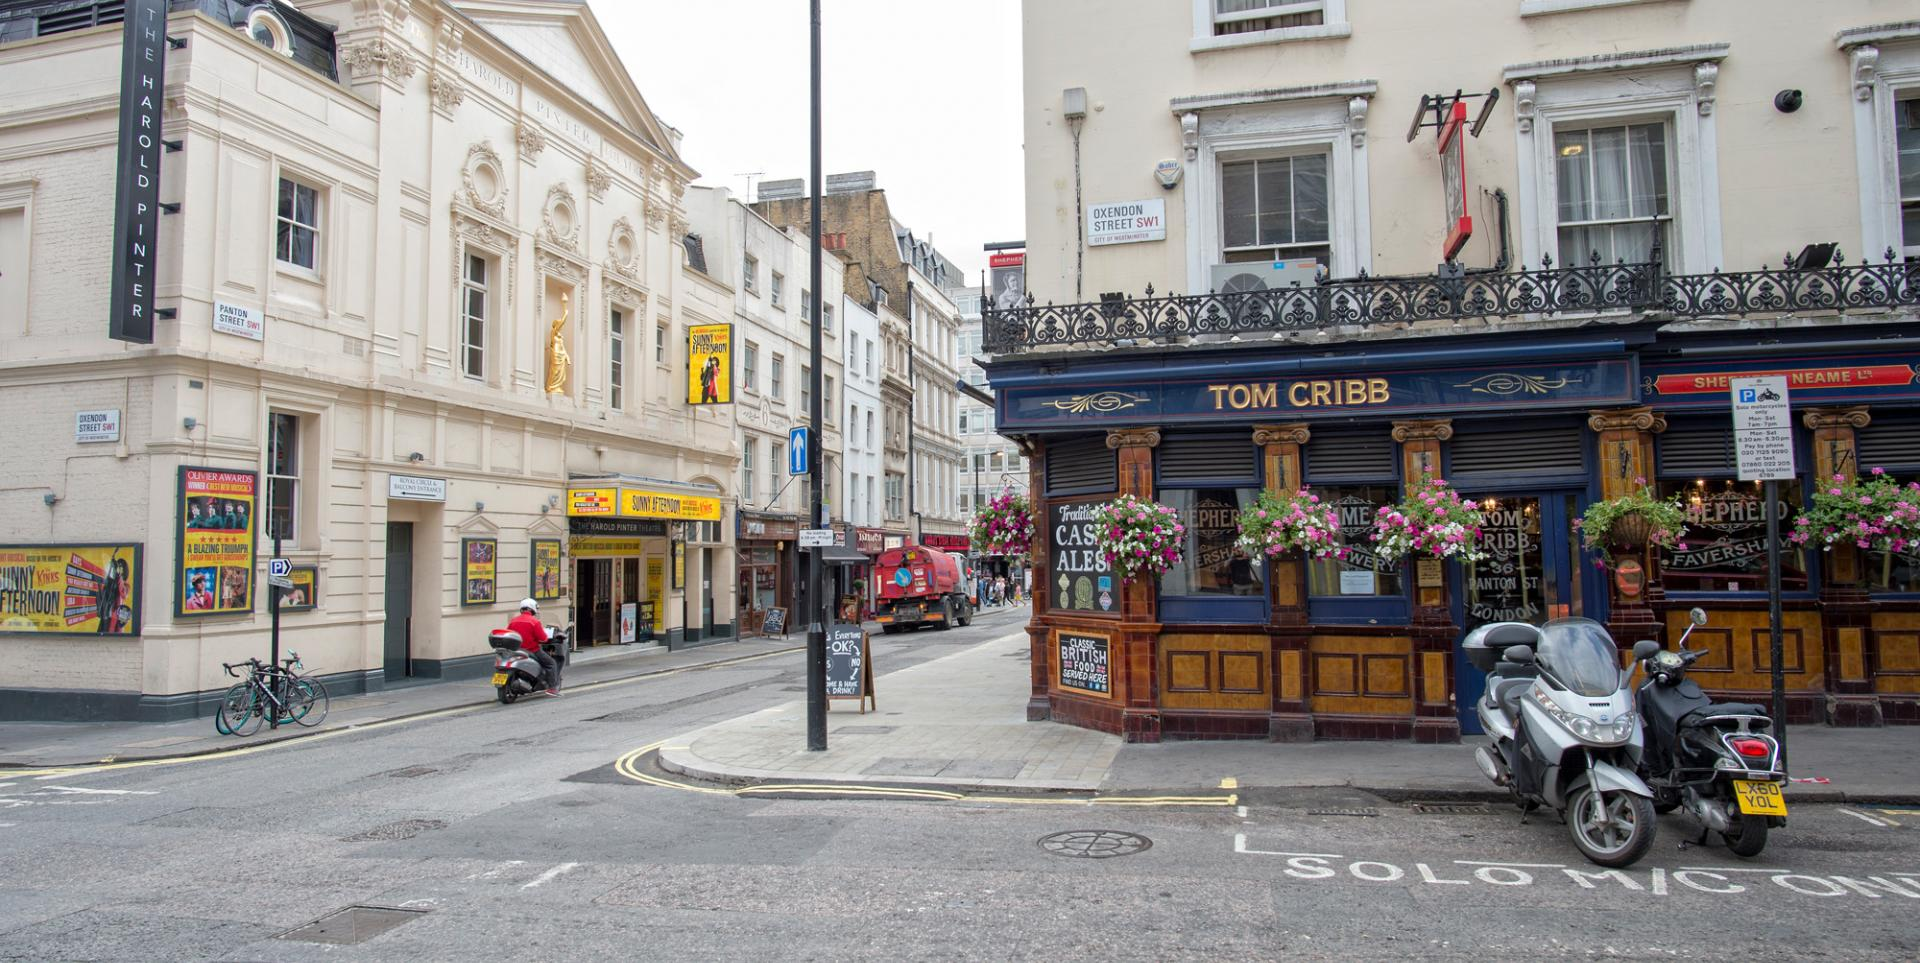 Tom Crib, Piccadilly, London - Welcome